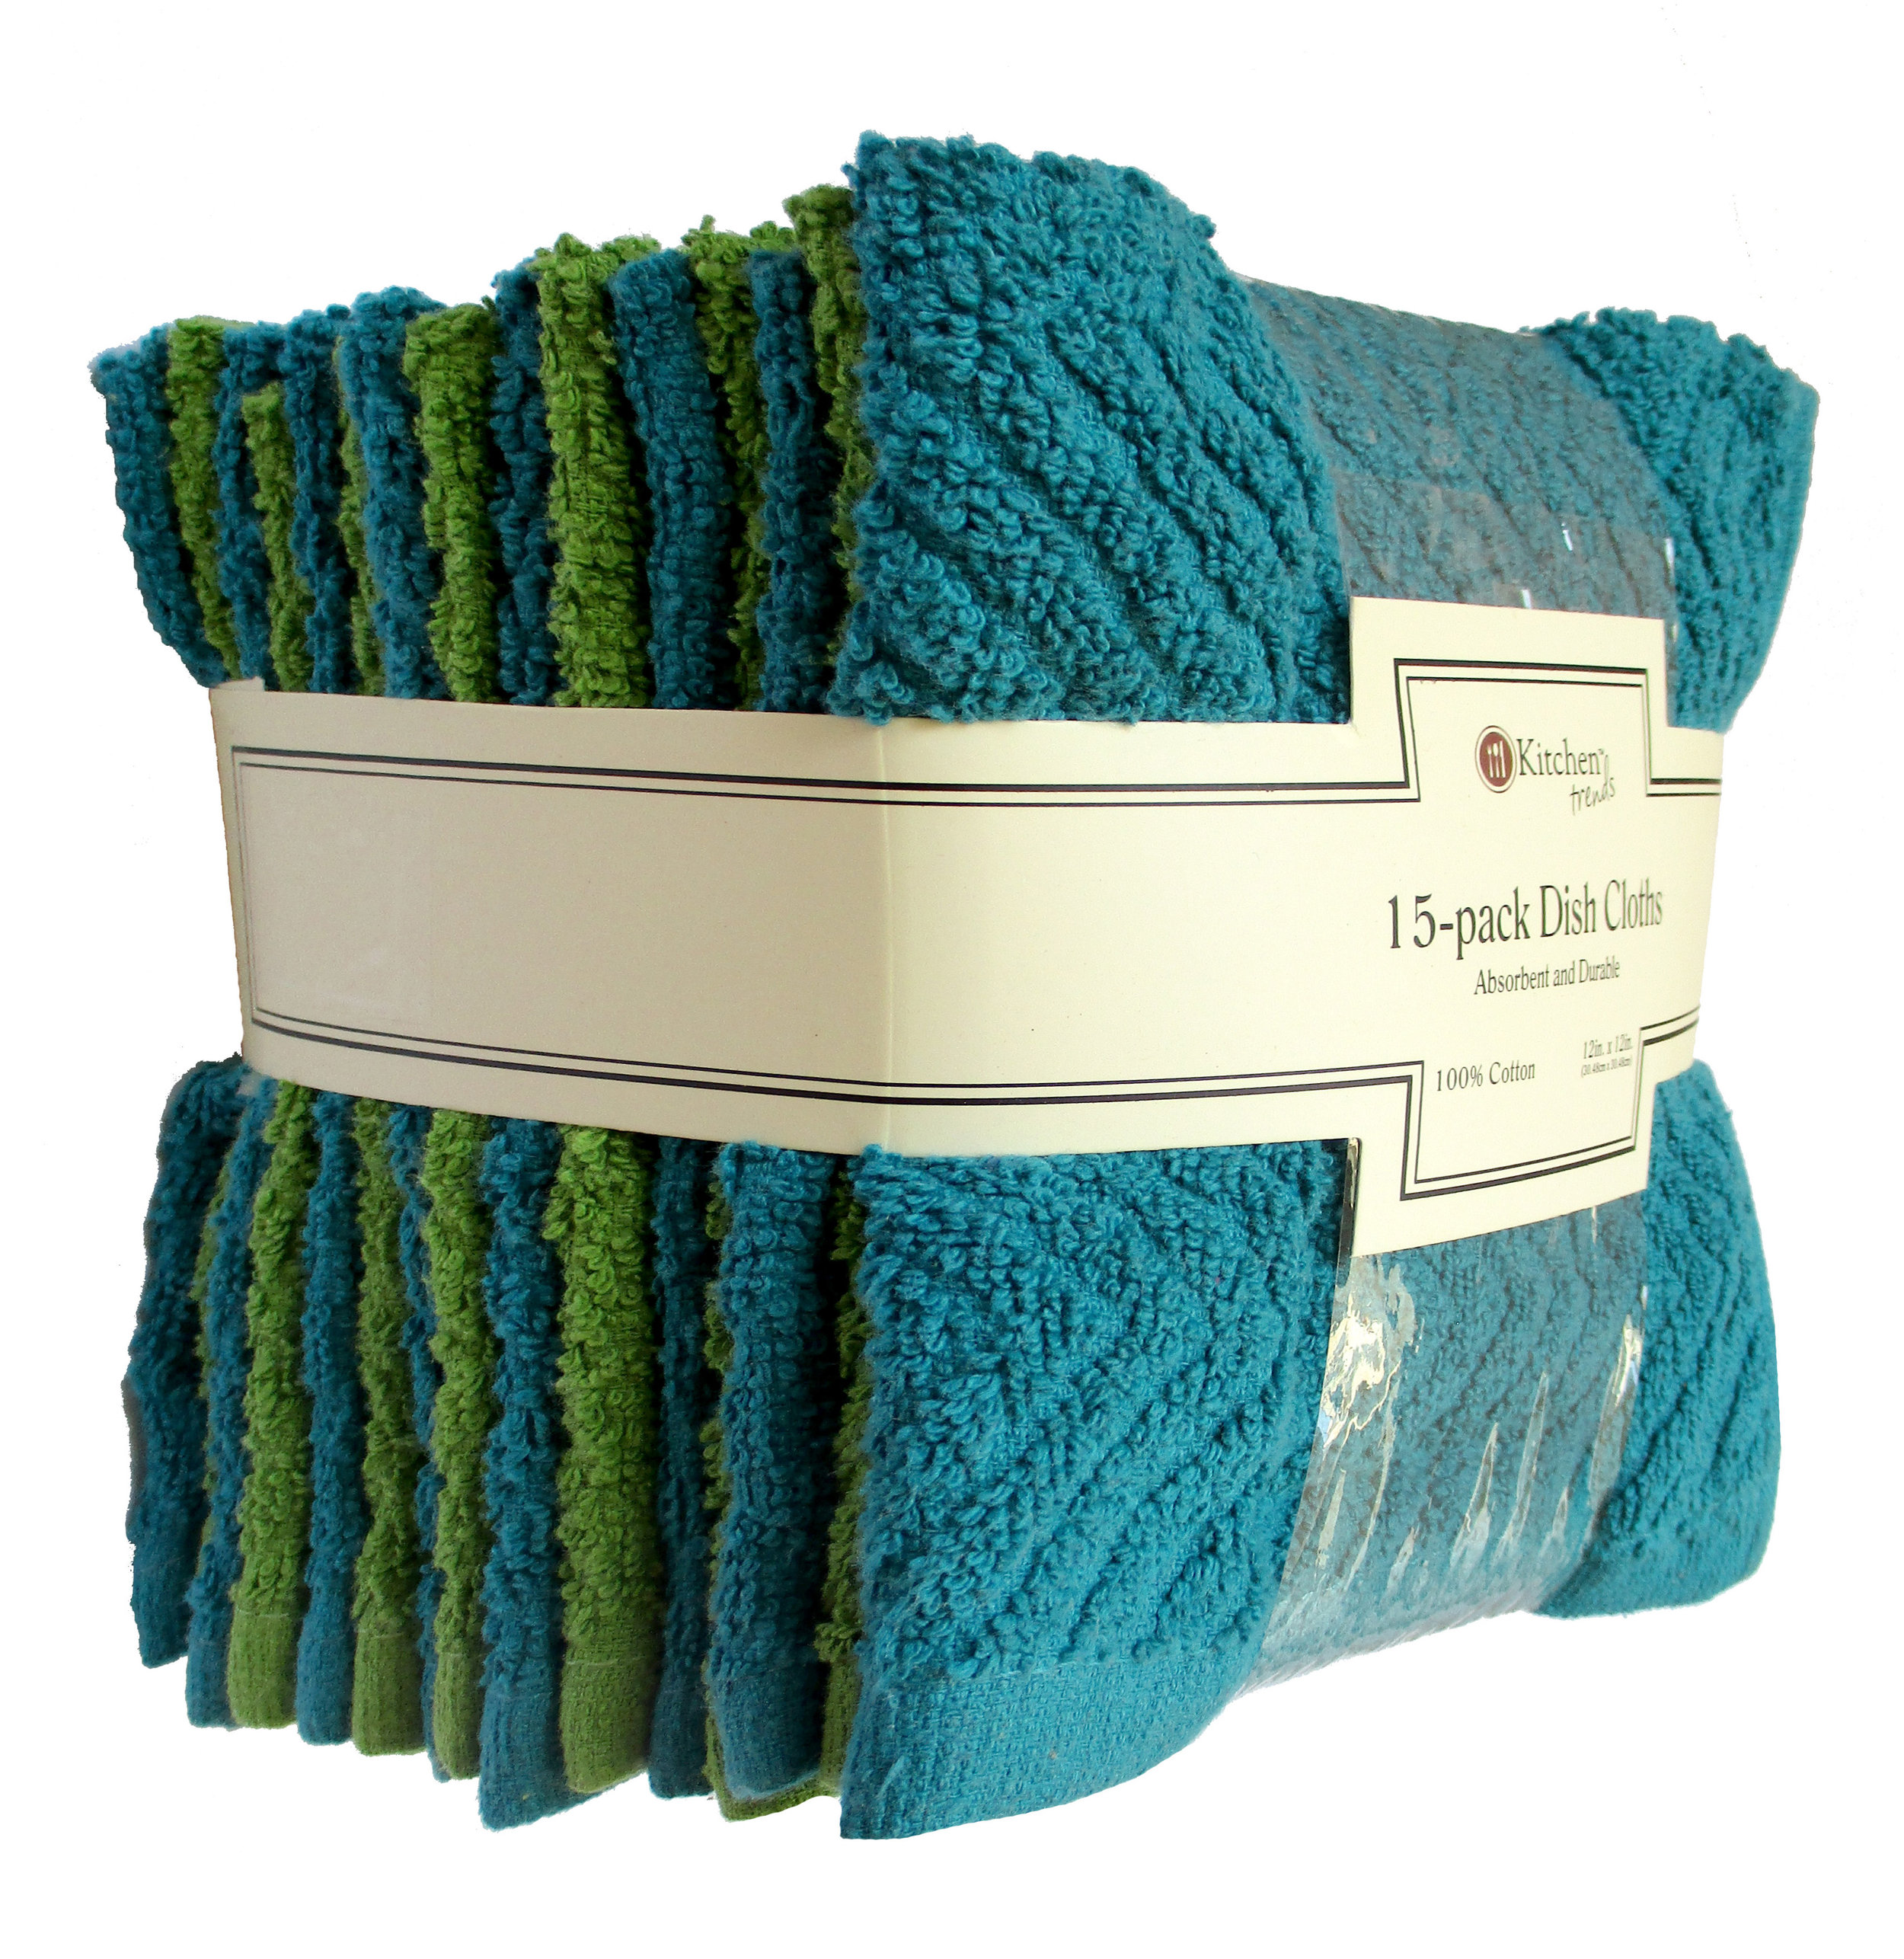 Value Pack Dishcloth Sets